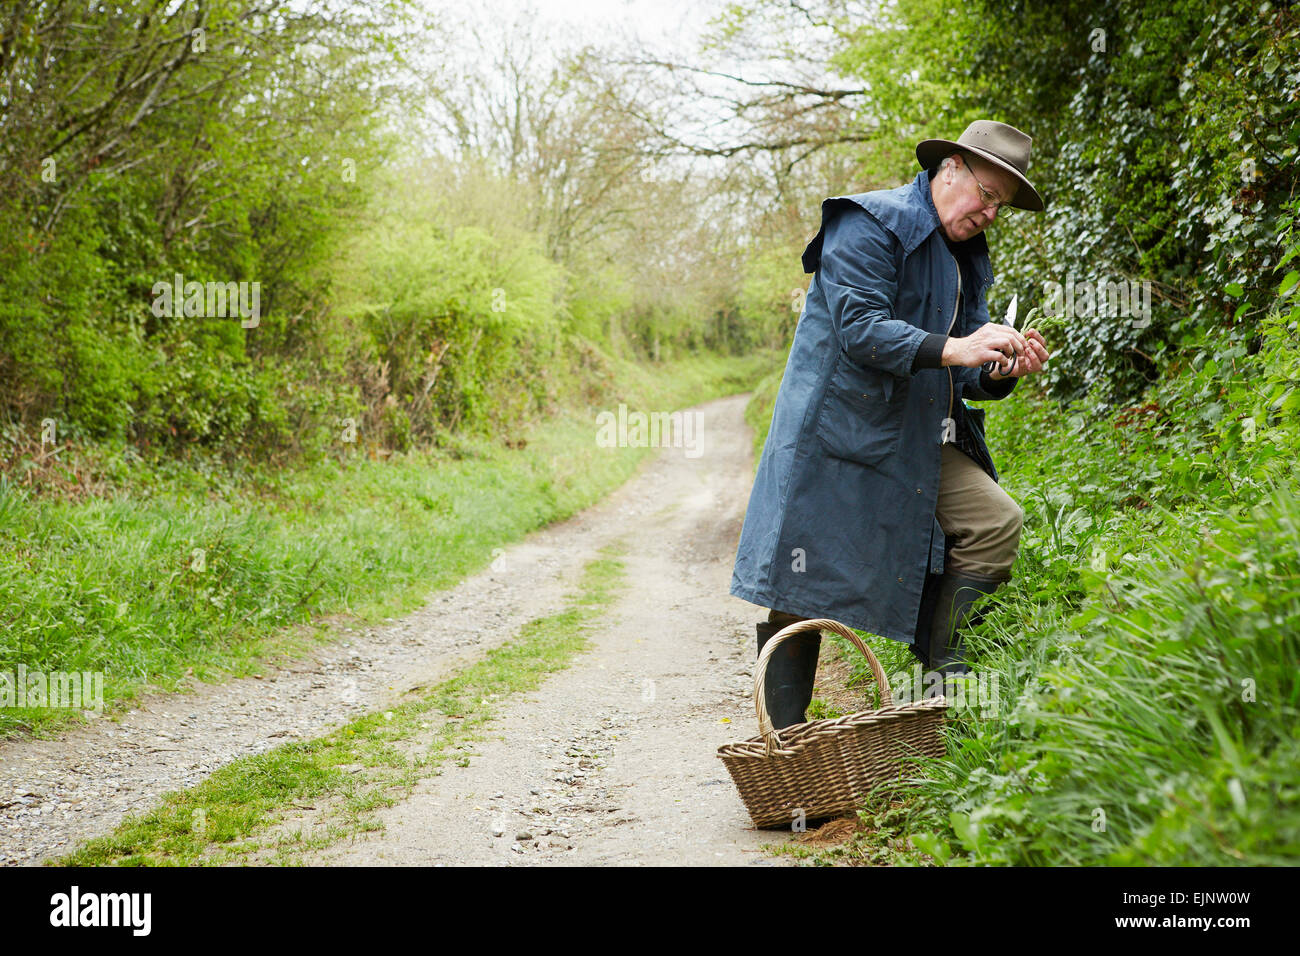 A man in a long coat and boots foraging for edible and tasty plants in the hedgerow. - Stock Image